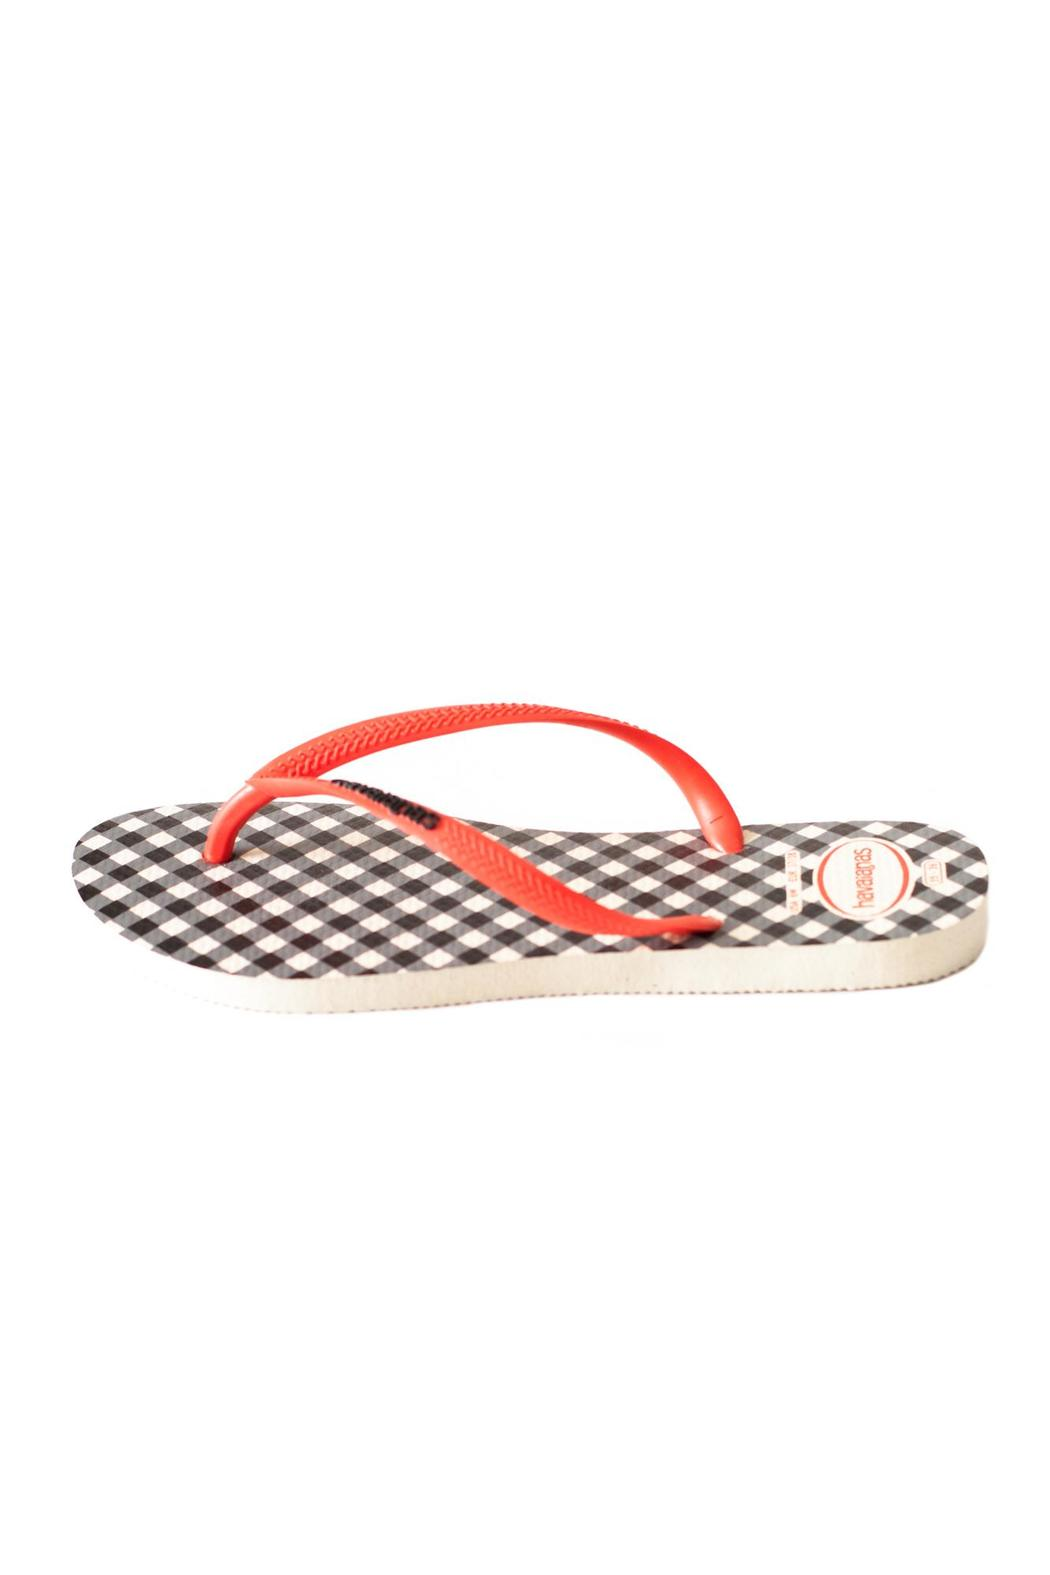 3924a690fcdb33 Havaianas Checkered Sandal from Philadelphia by May 23 — Shoptiques